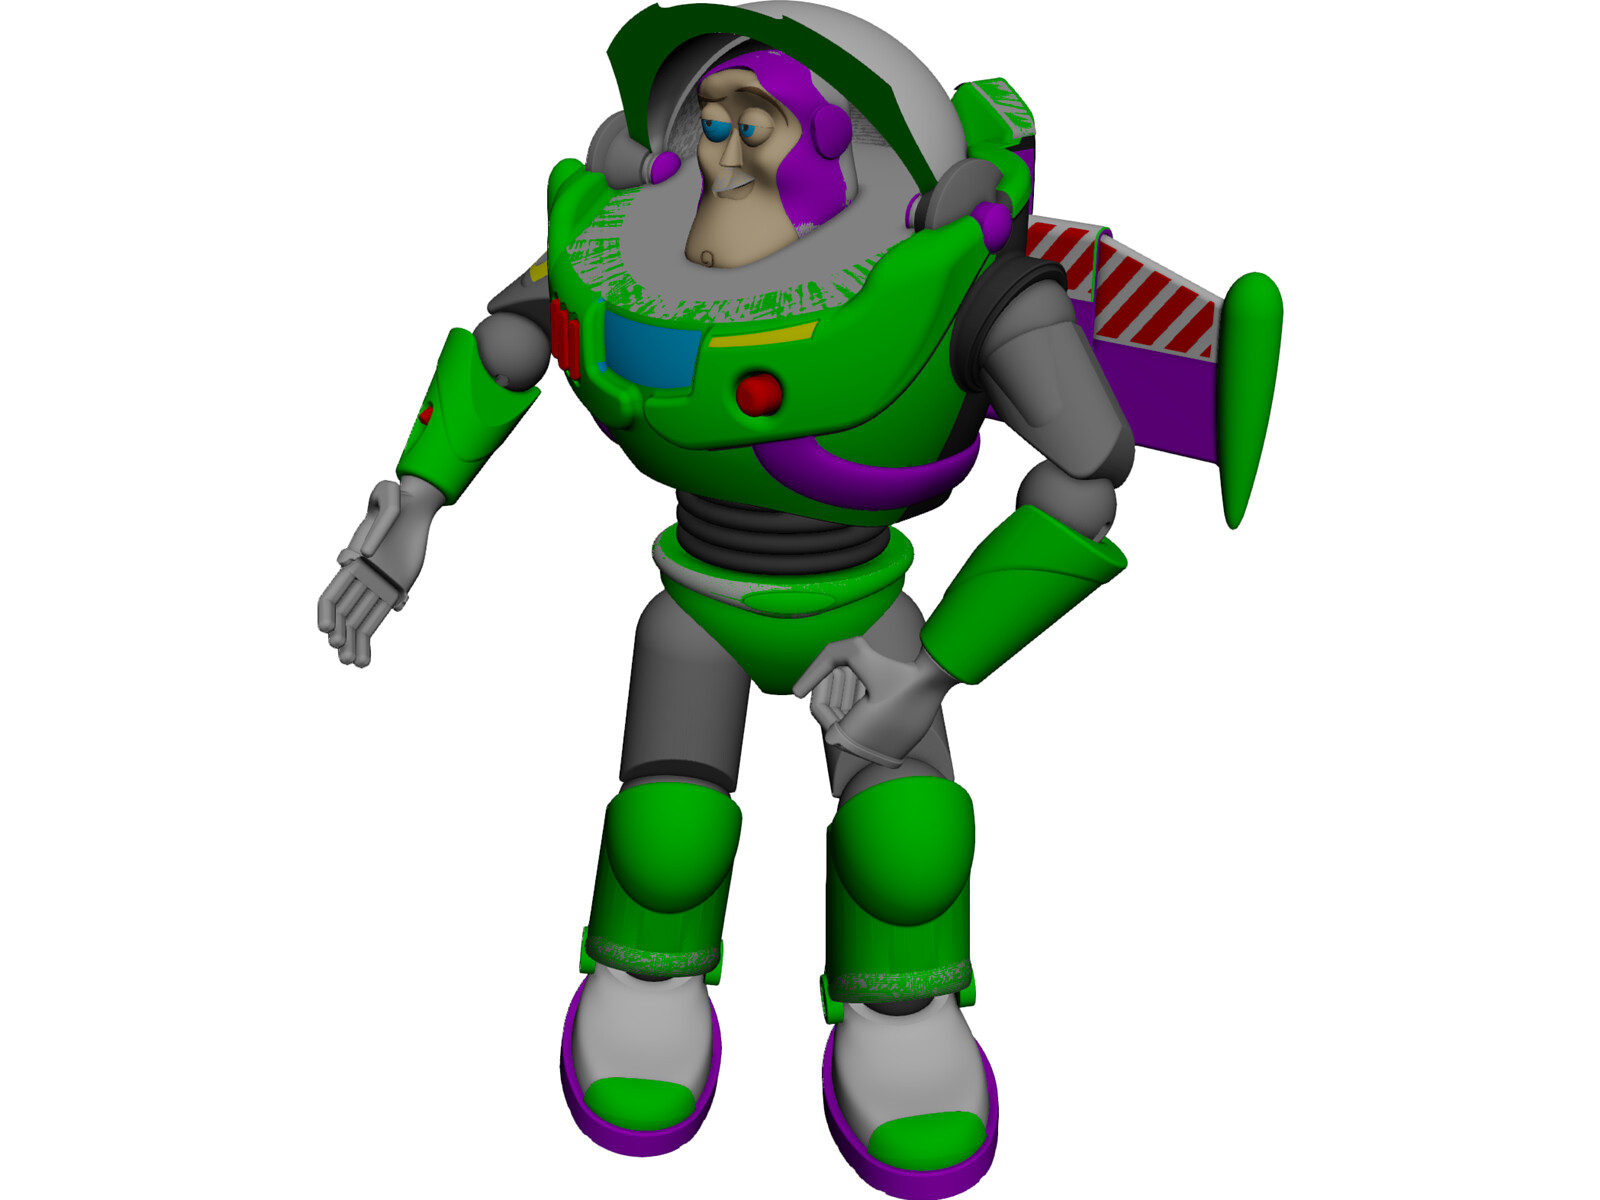 autocad Light 20 Images Buzz Lightyear 3d Cad Model